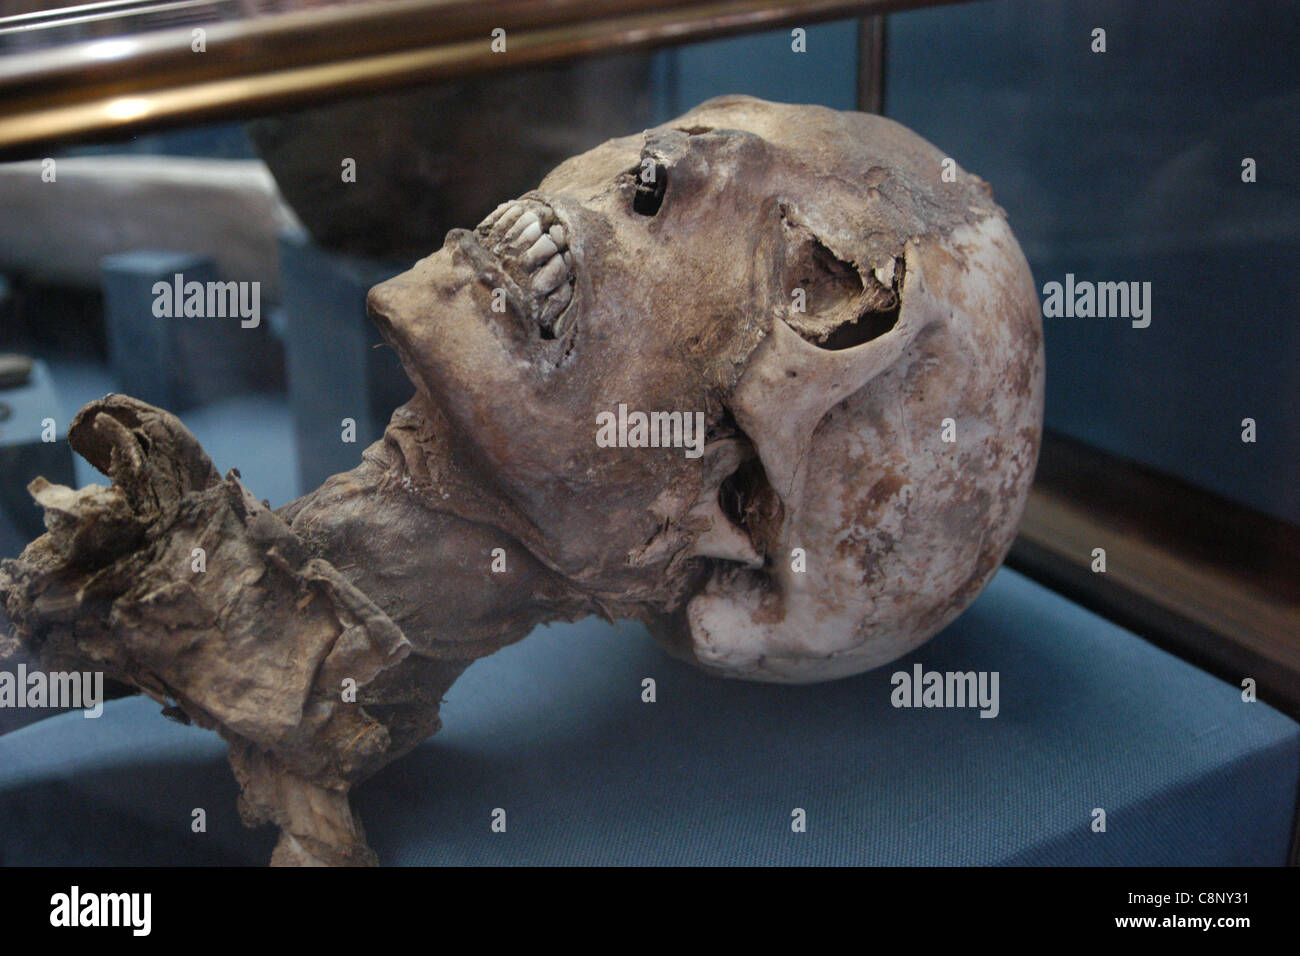 Altai mummy seen in the State Historical Museum in Moscow, Russia. - Stock Image